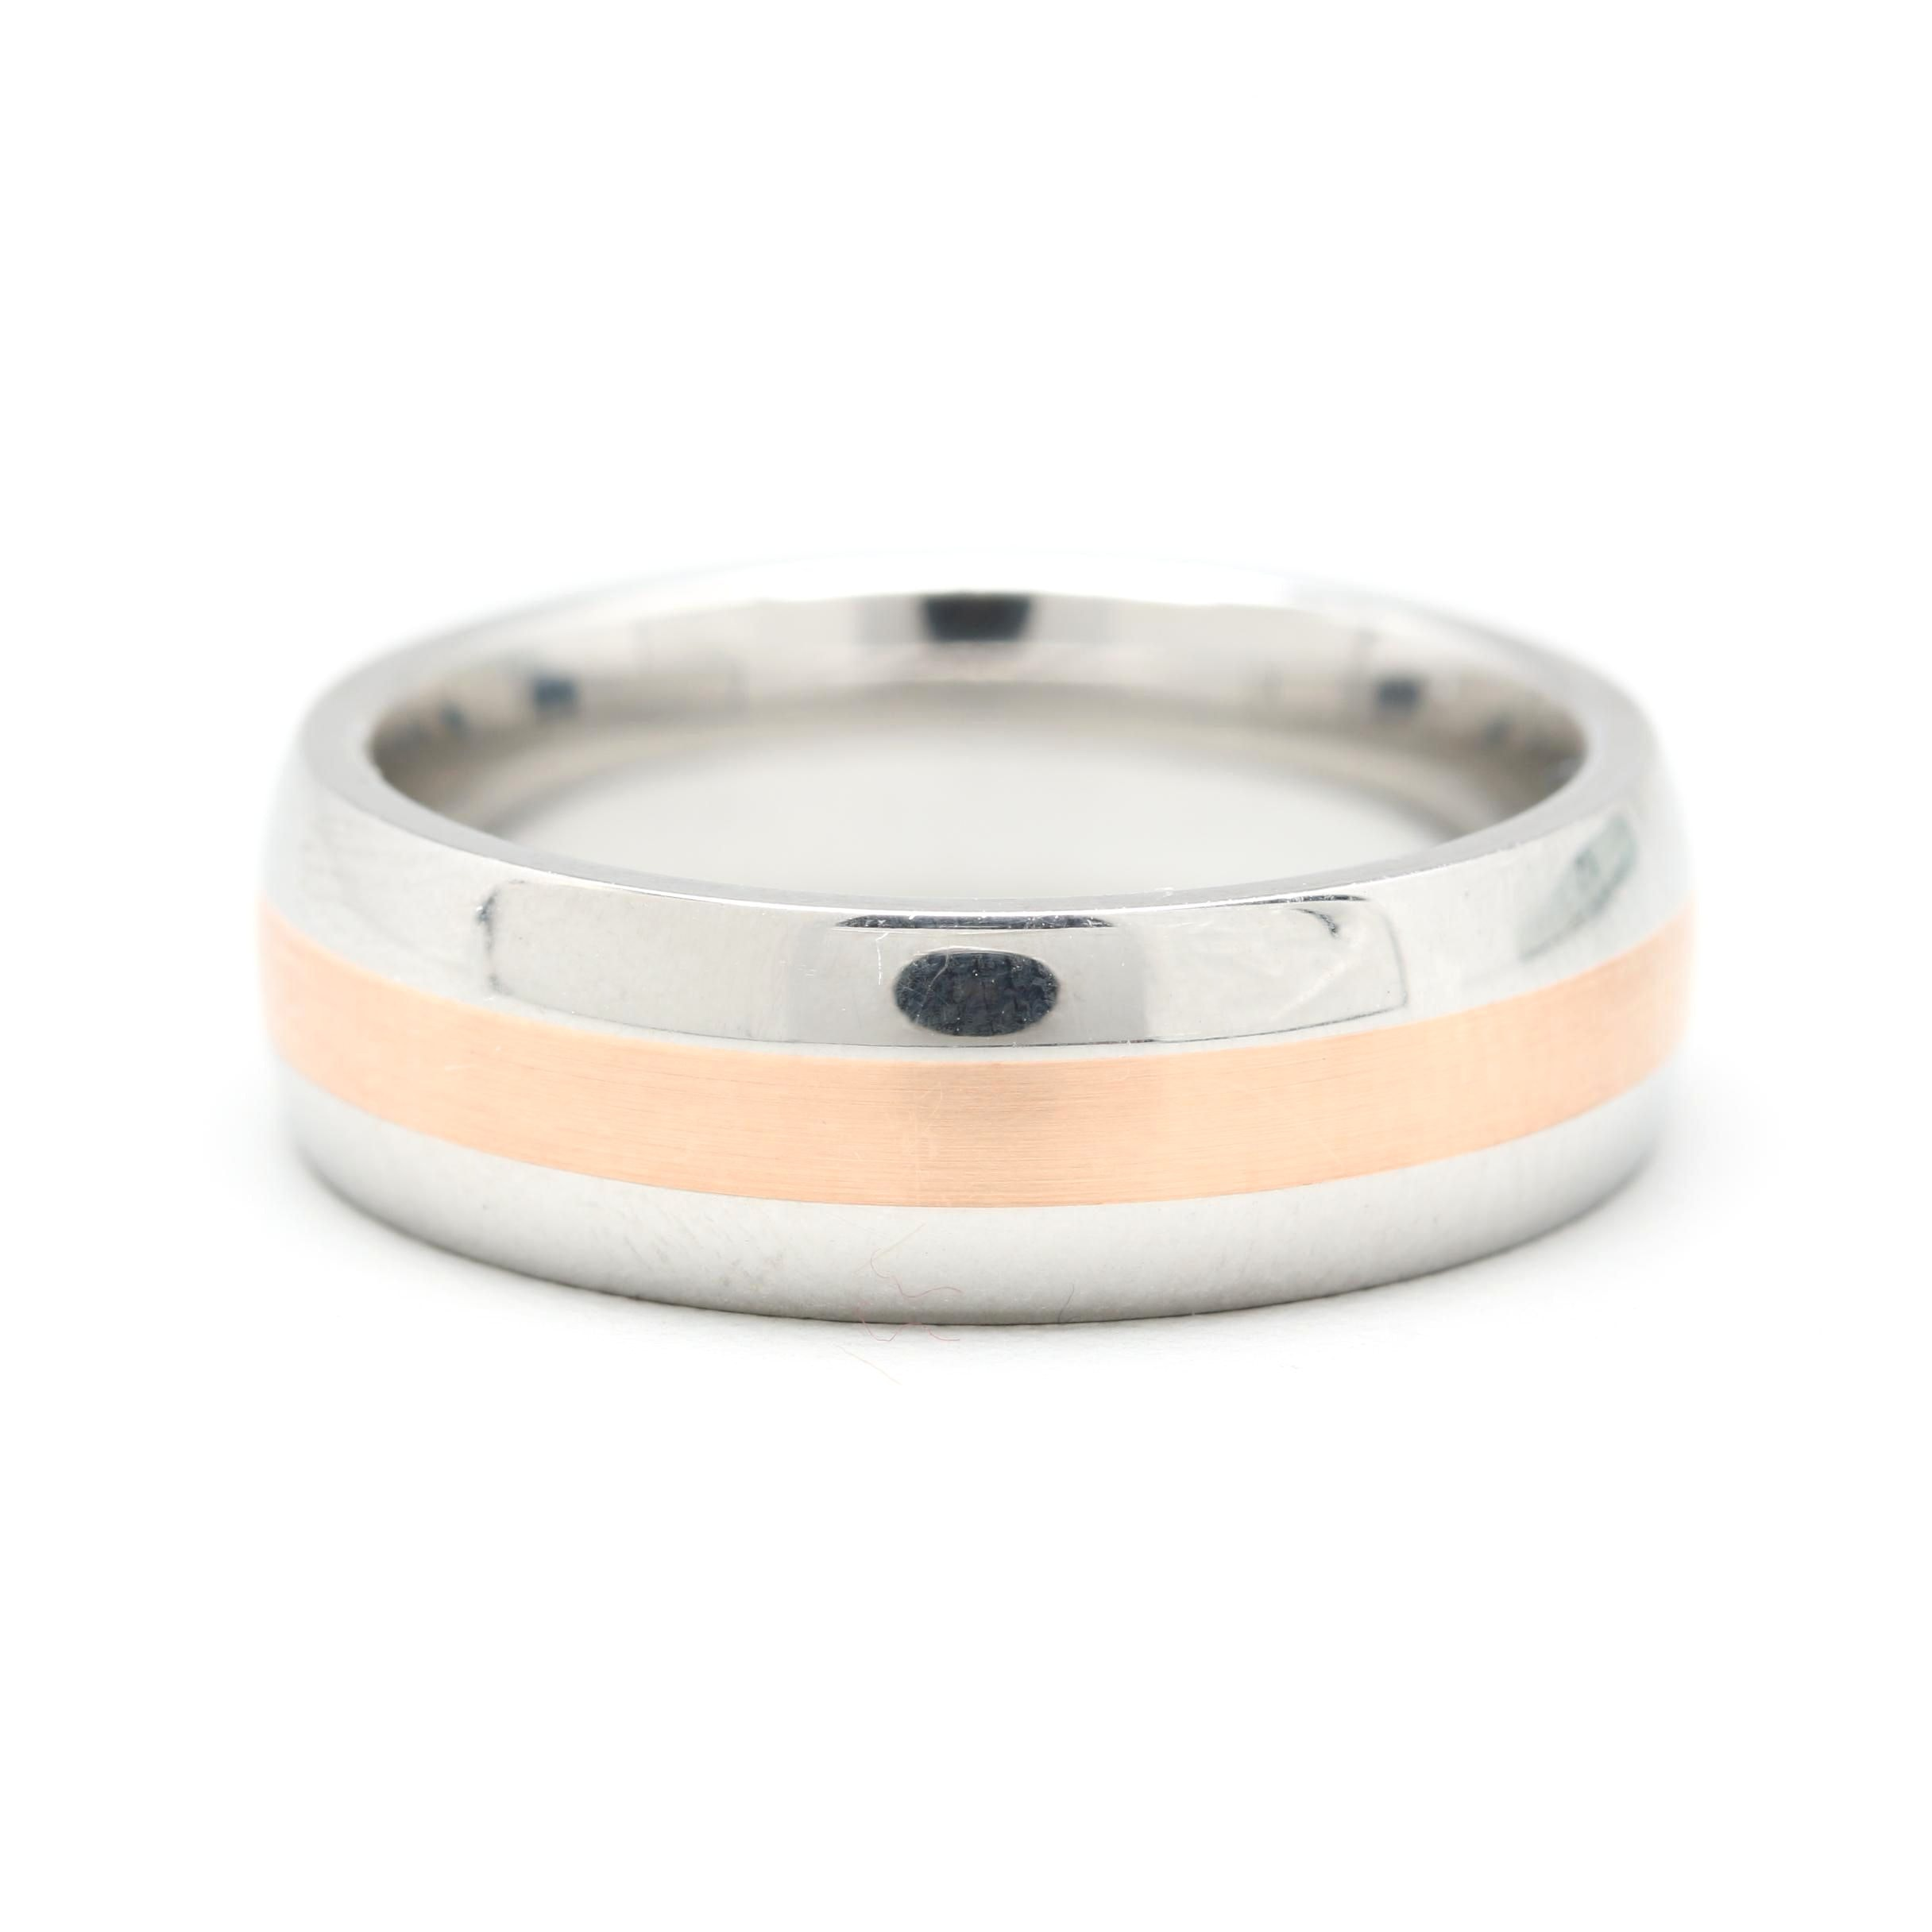 Stainless Steel and 14K Rose Gold Ring